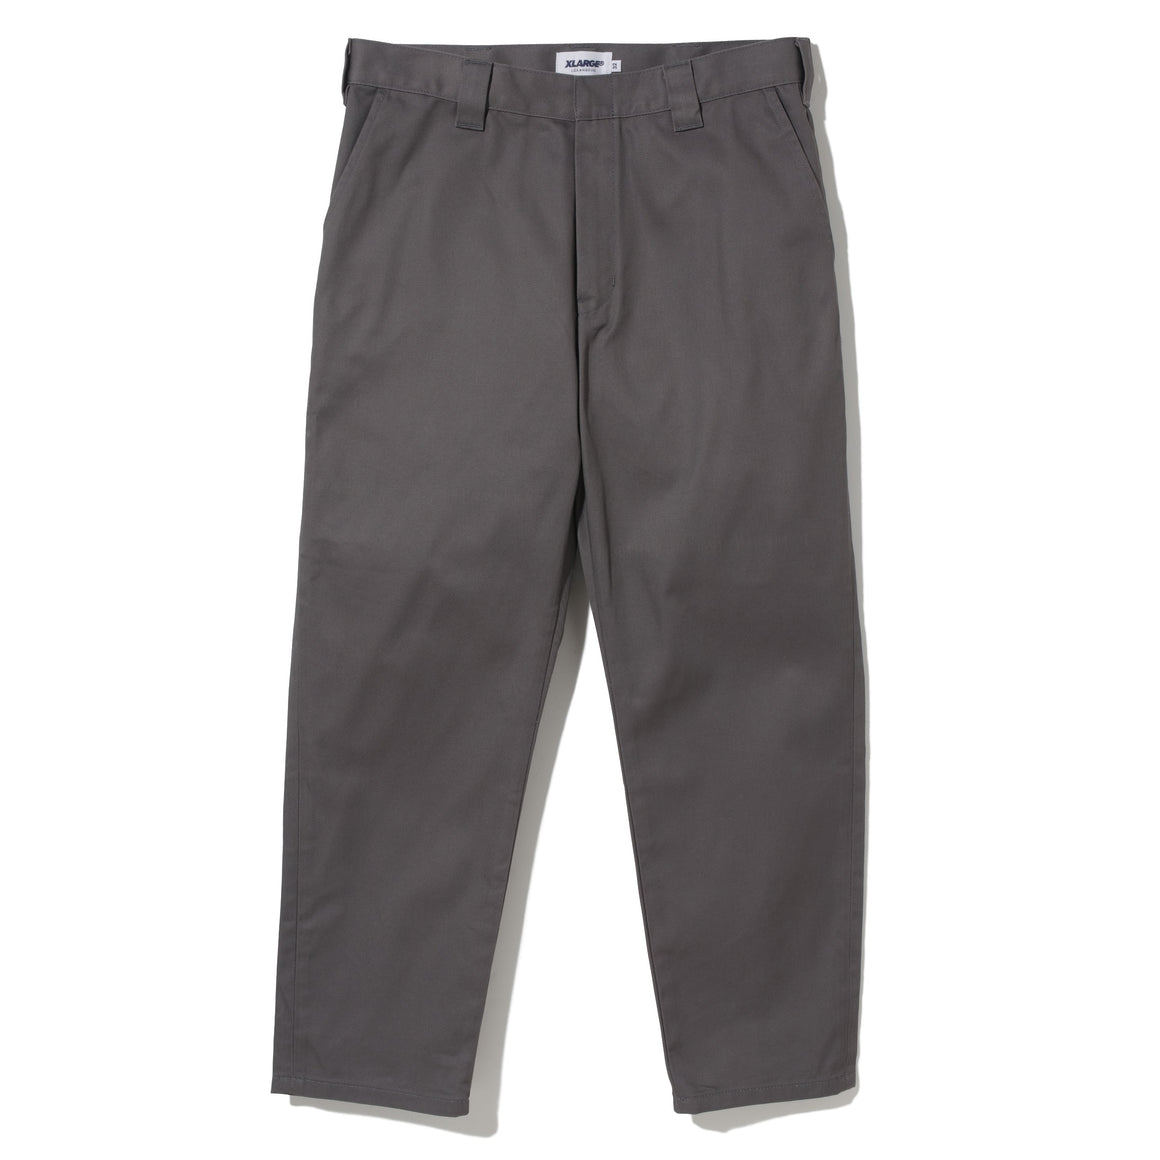 SIDE POCKET WORK PANT